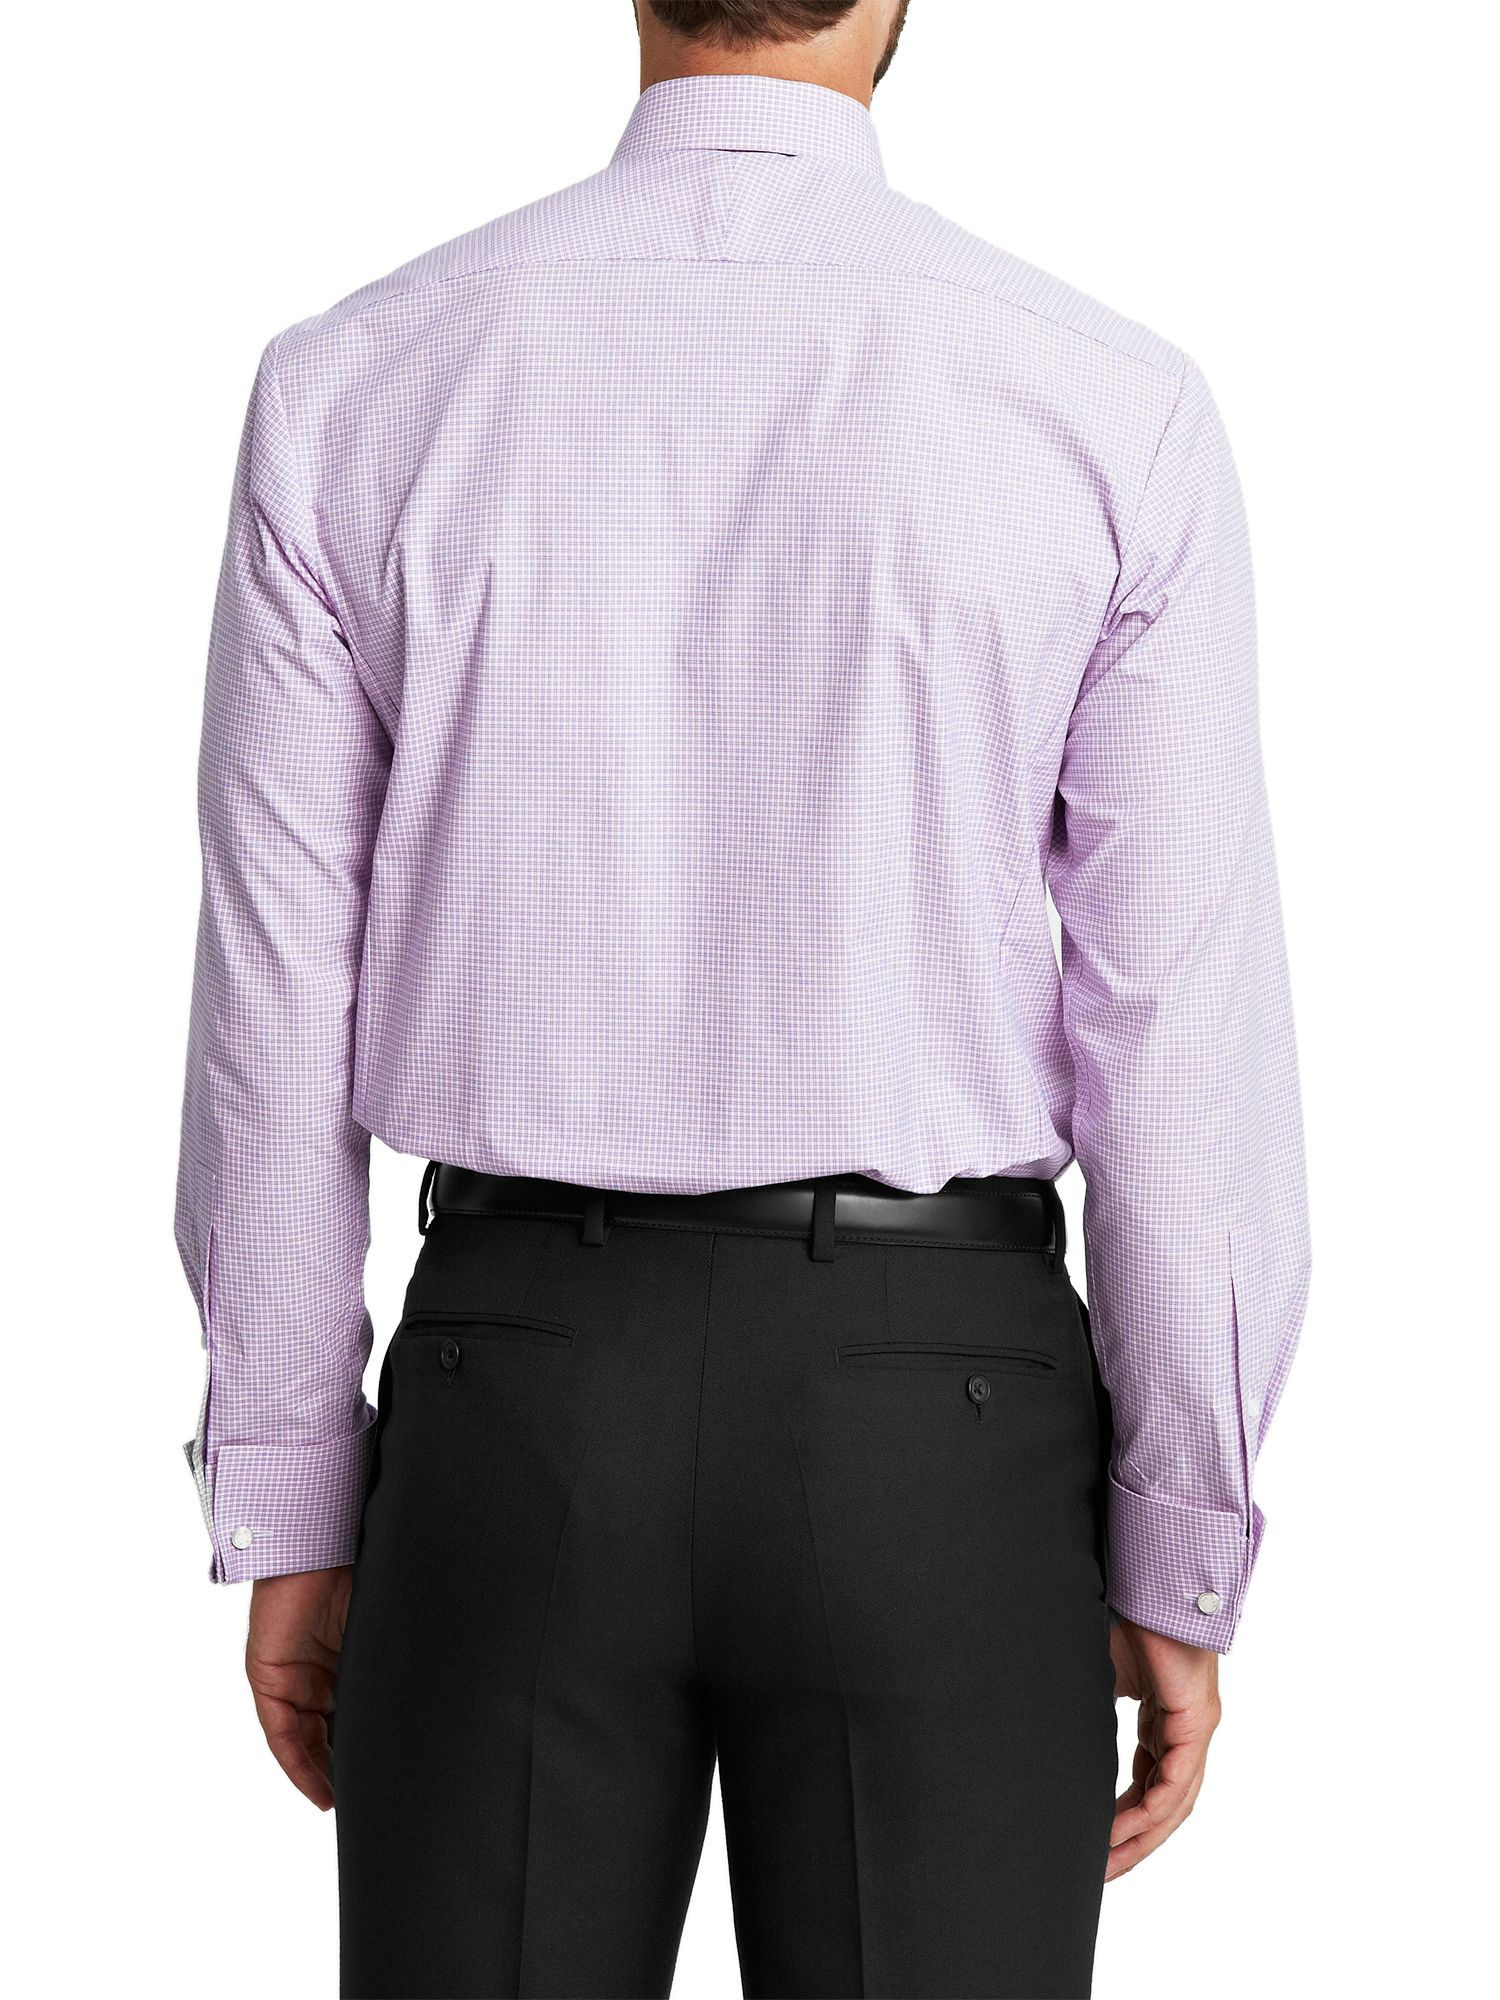 Thomas Pink Slim Fit Double Cuff Shirt In Purple For Men